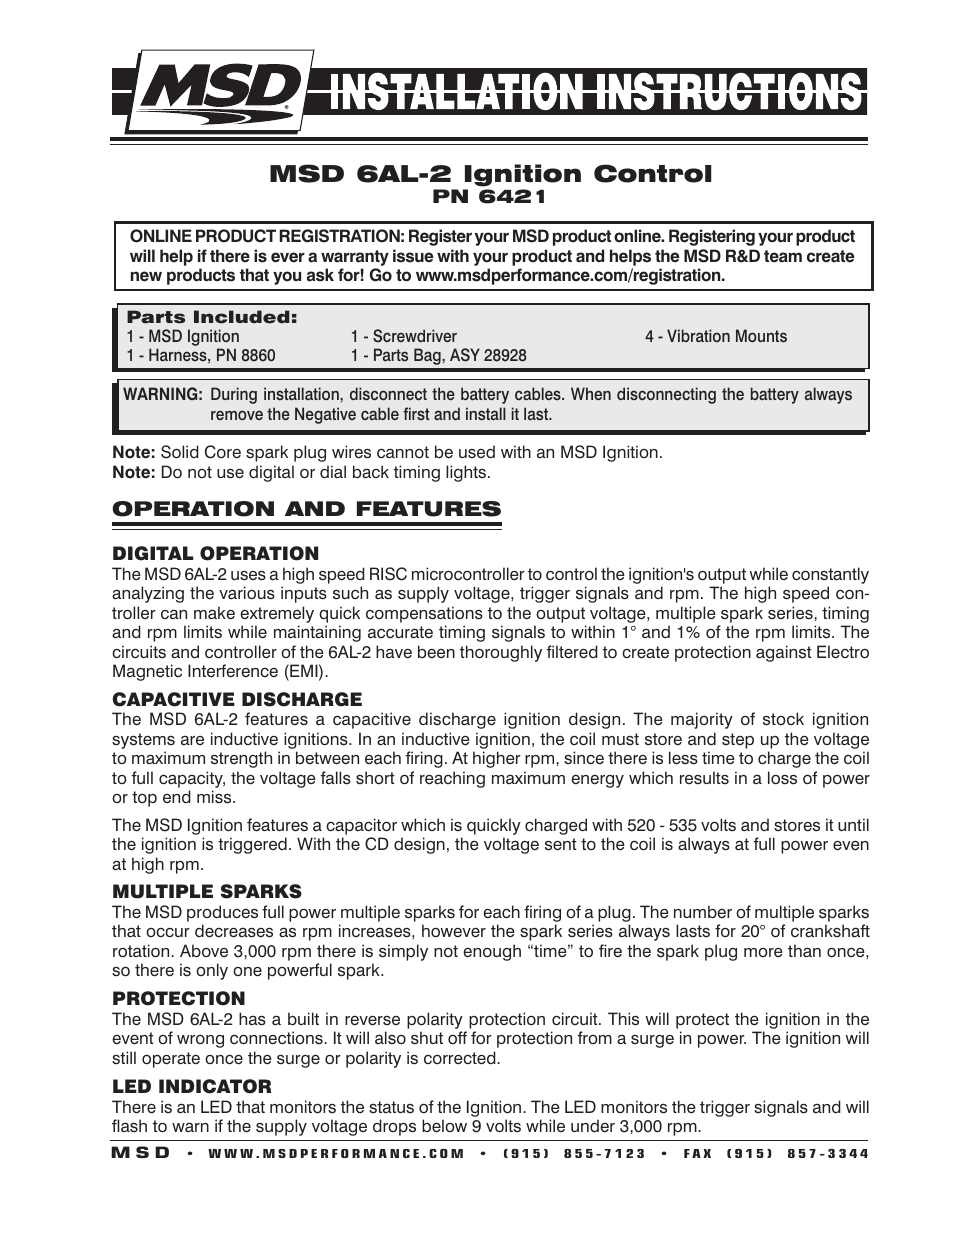 msd 6al 2 wiring diagram msd image wiring diagram msd 6421 6al 2 ignition control installation user manual 28 pages on msd 6al 2 wiring